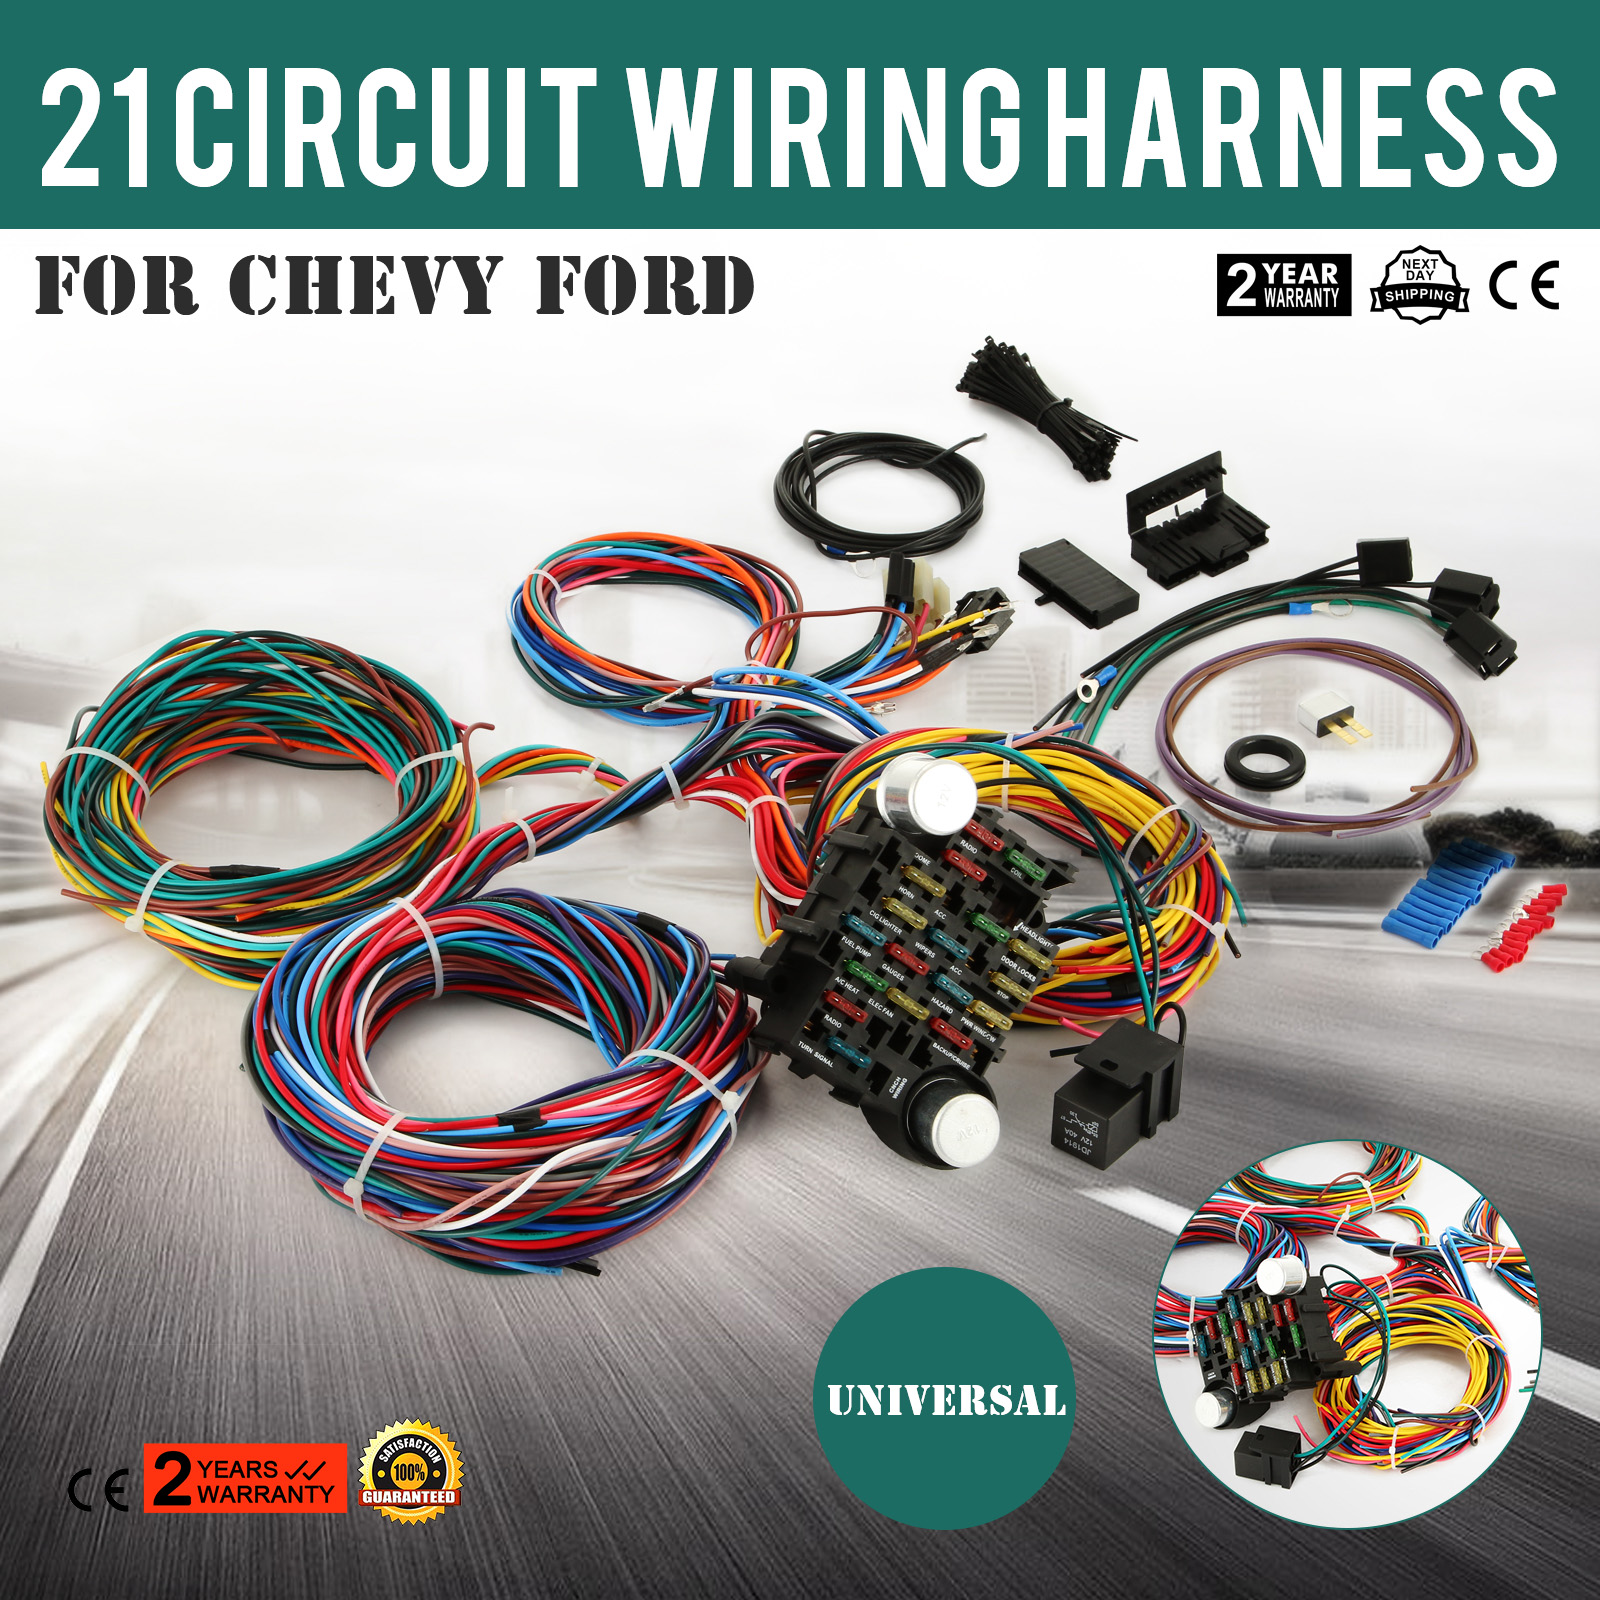 ez wiring 21 circuit diagram automotive 21 circuit ez wiring harness chevy universal wires install ... ez wiring 21 circuit harness ply